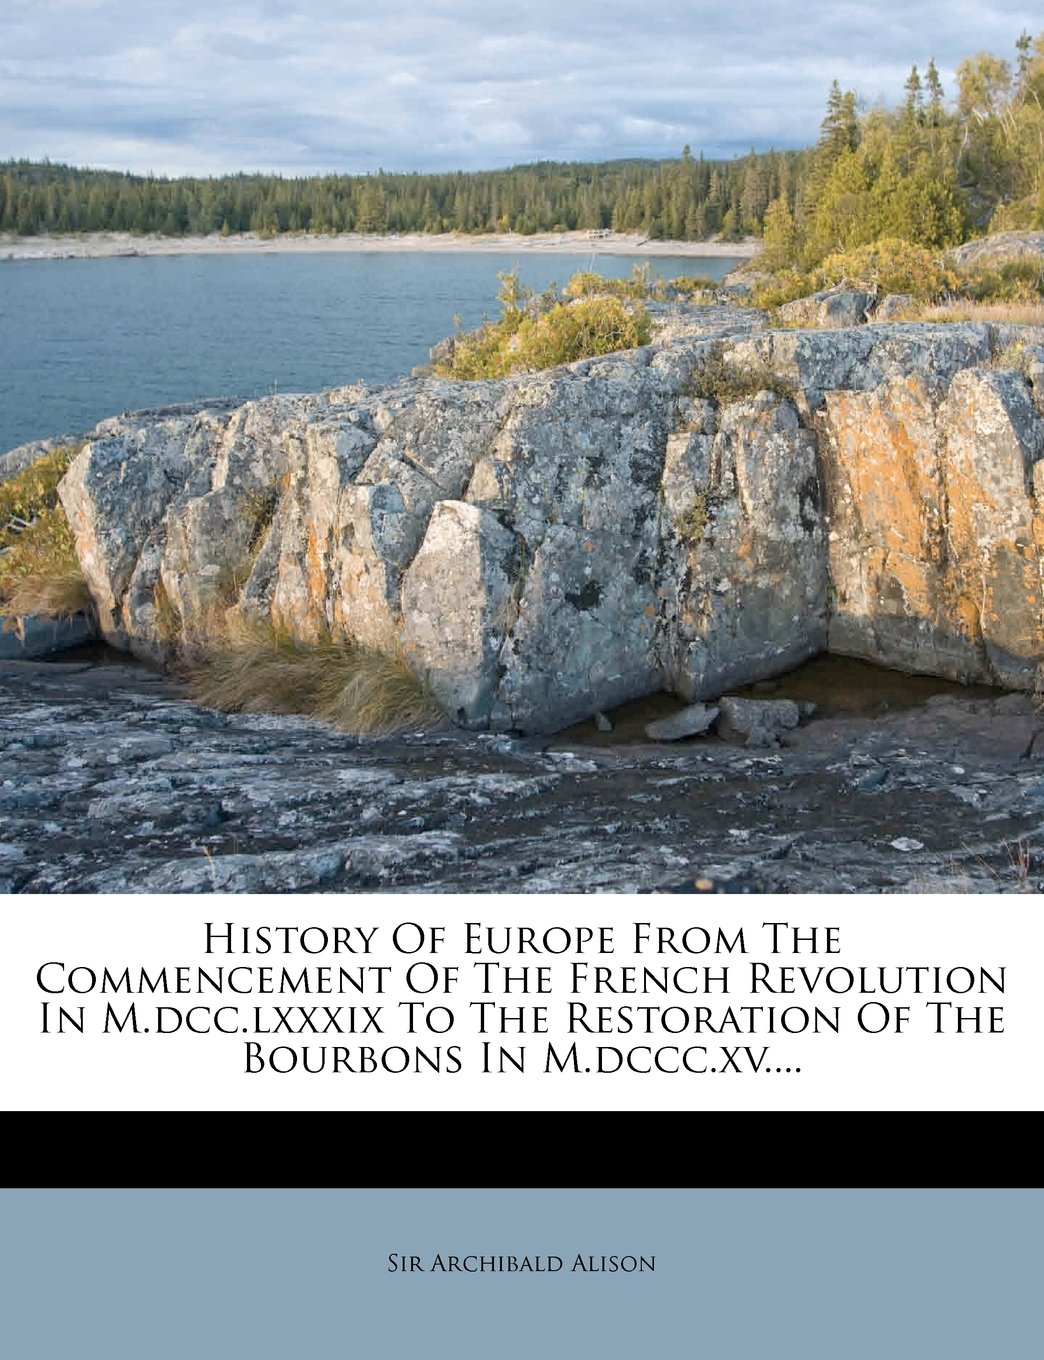 History Of Europe From The Commencement Of The French Revolution In M.dcc.lxxxix To The Restoration Of The Bourbons In M.dccc.xv.... PDF